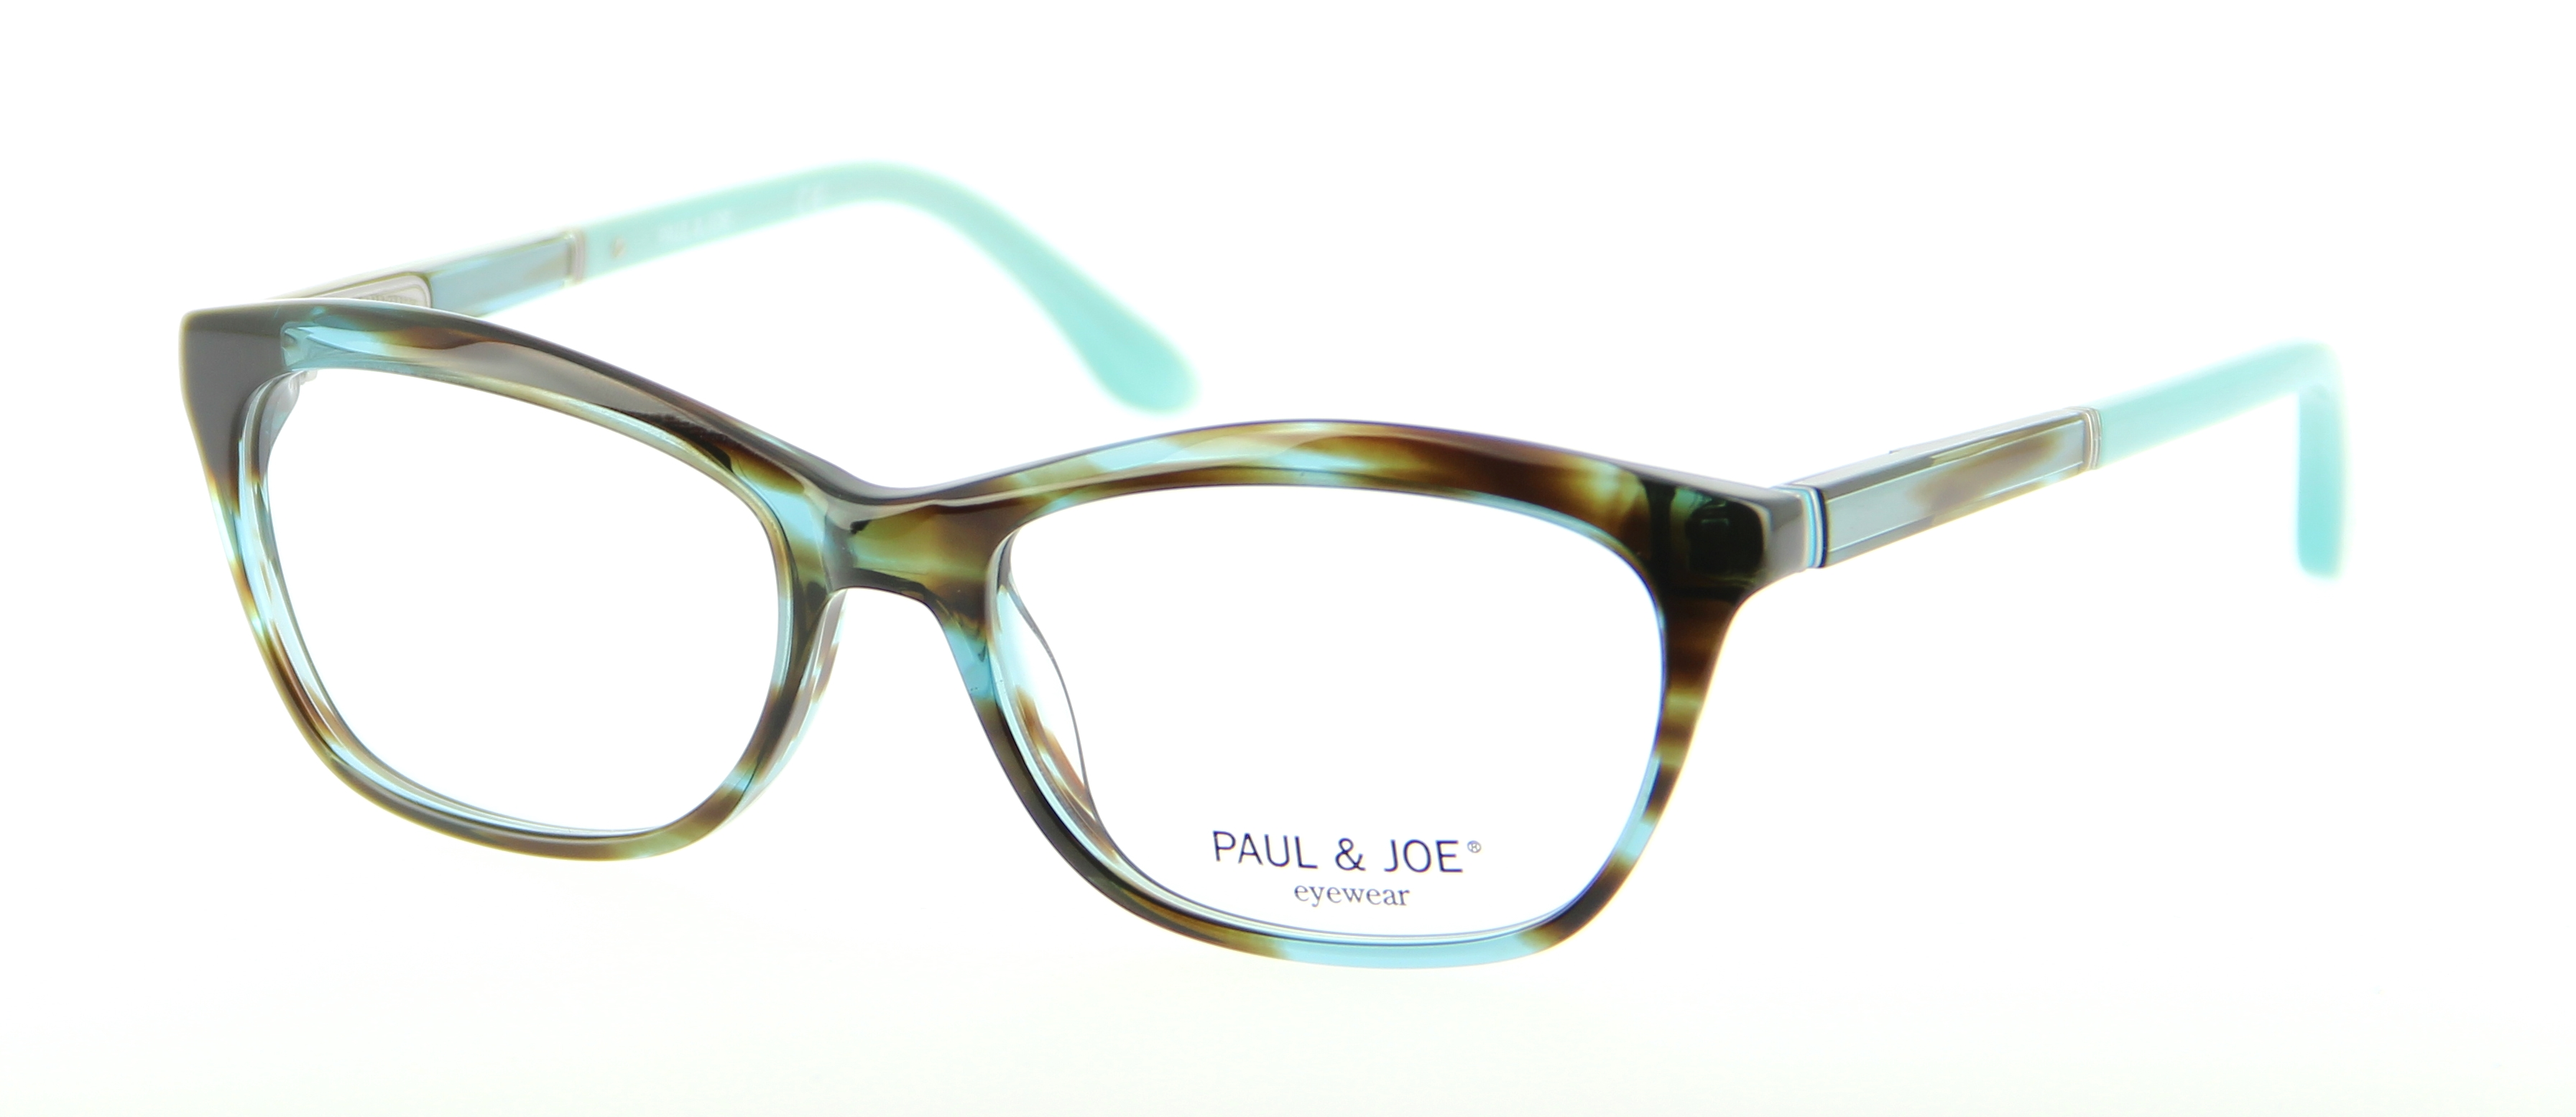 Eyeglasses PAUL & JOE PJ CHEYENNE02 E126 53/17 Woman ...